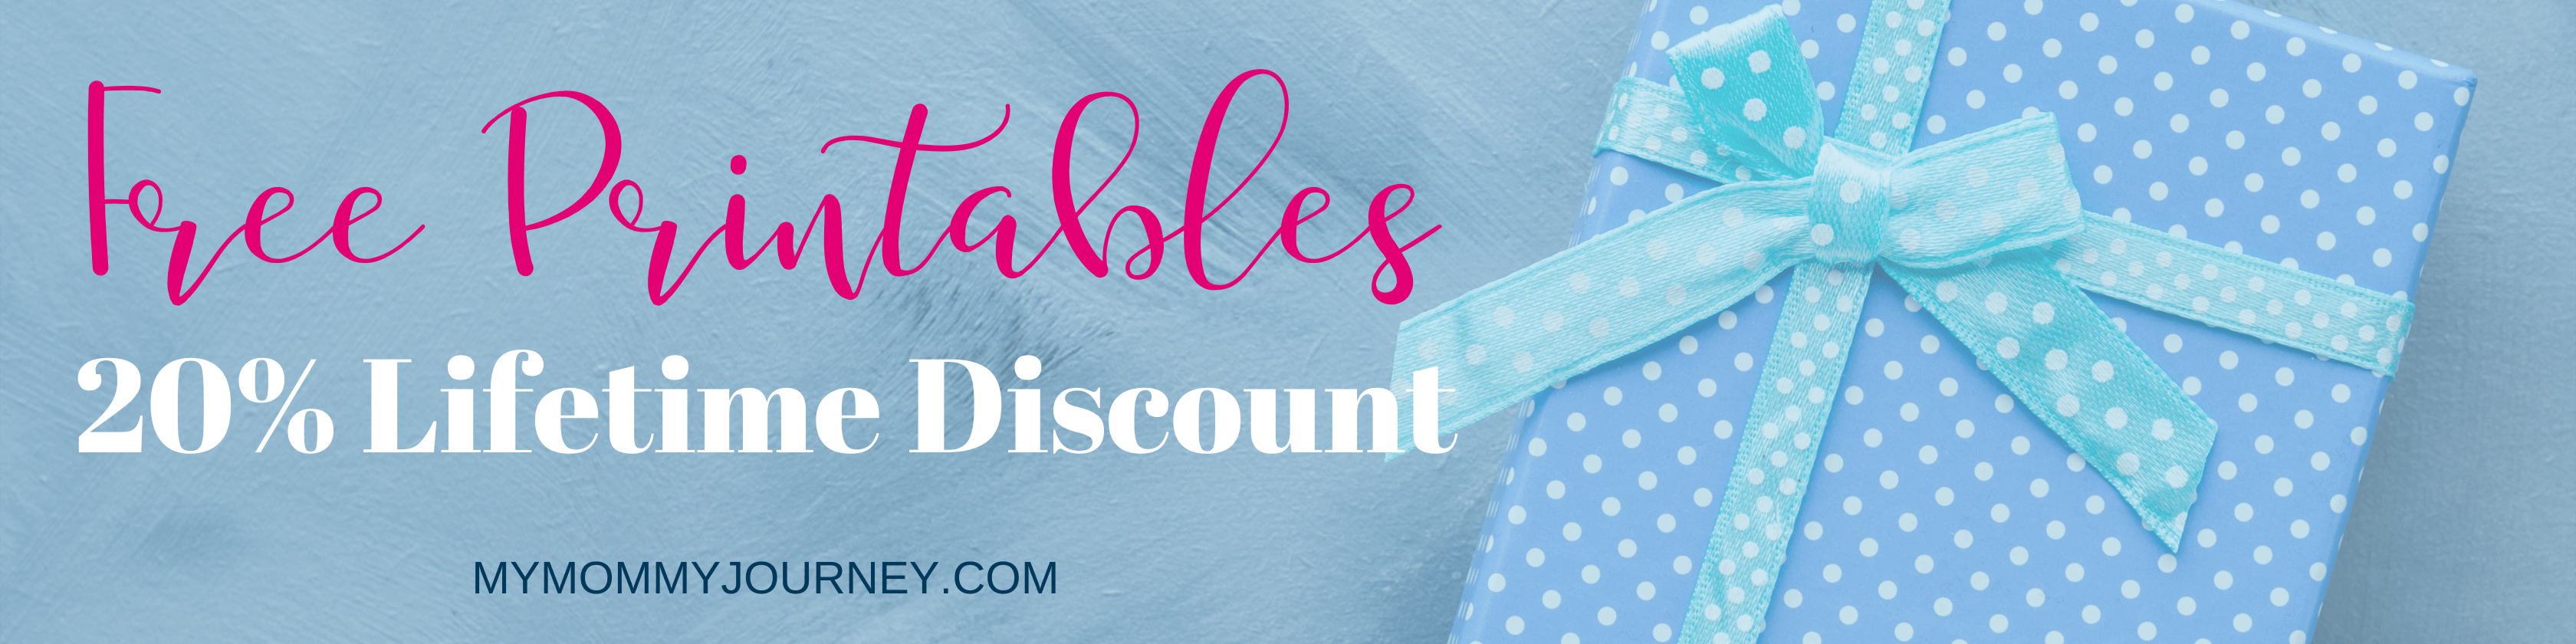 shop offer free printables and lifetime discount